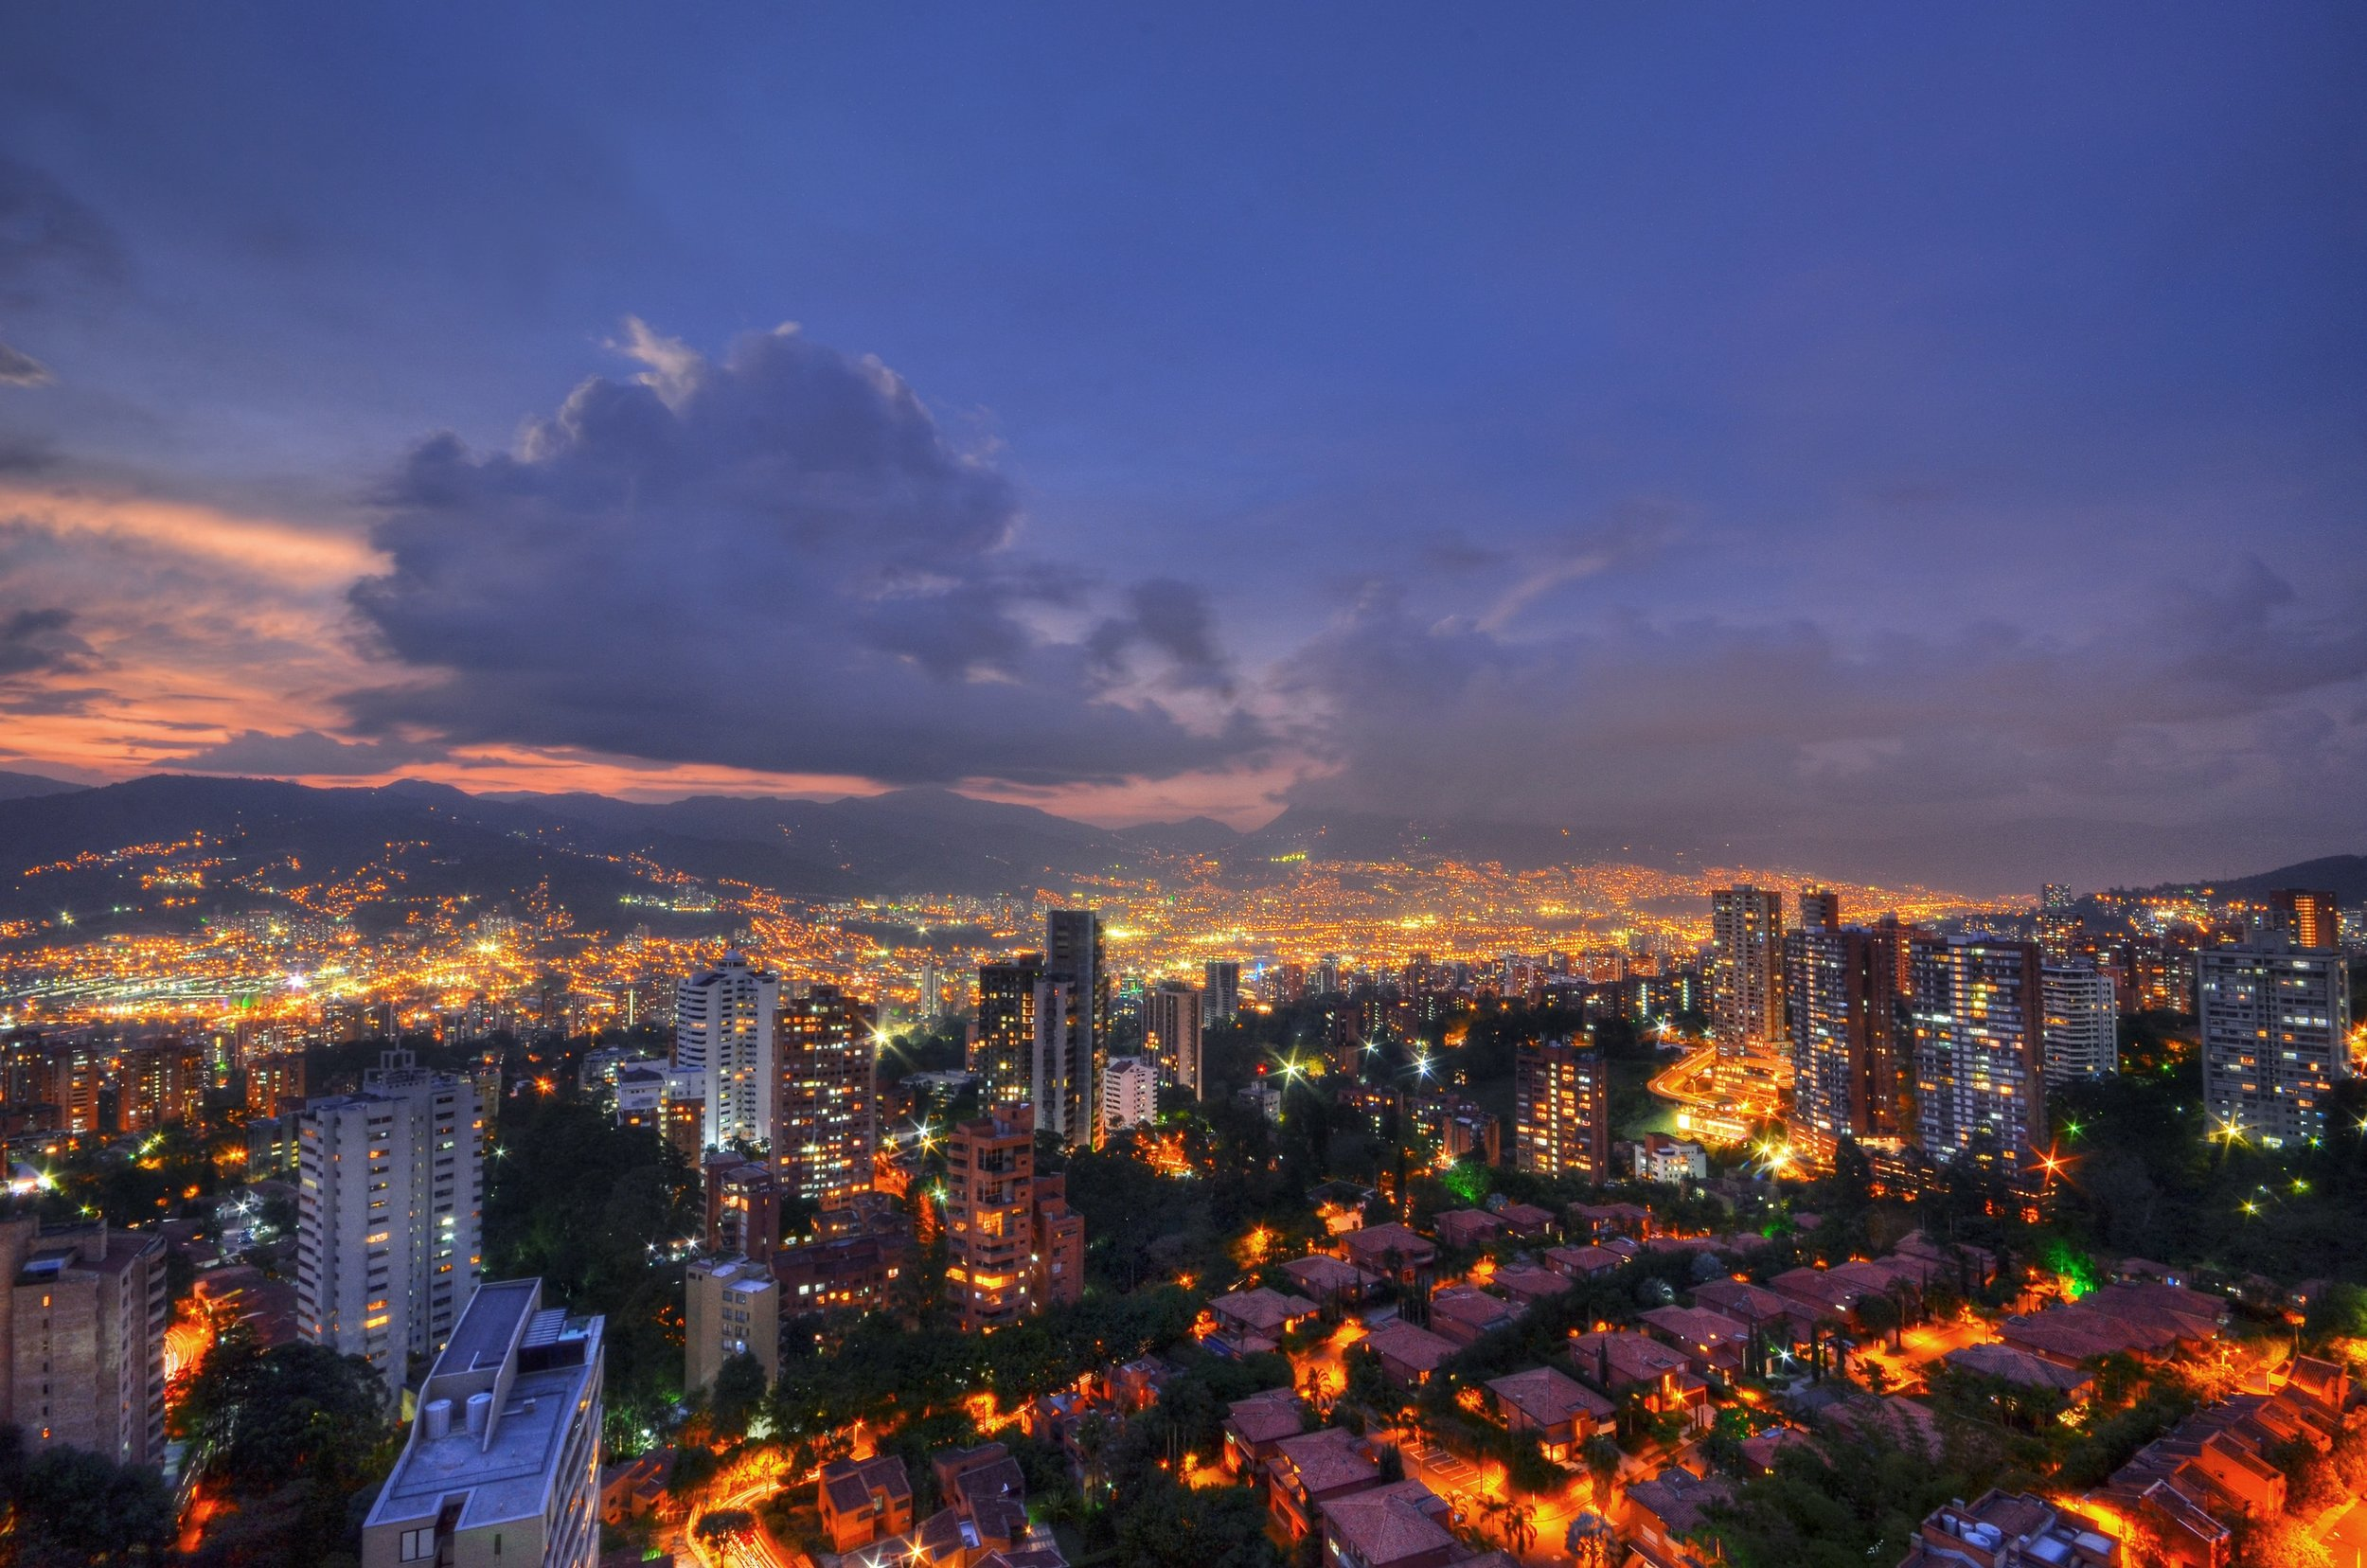 Medellin looks stunning at night.